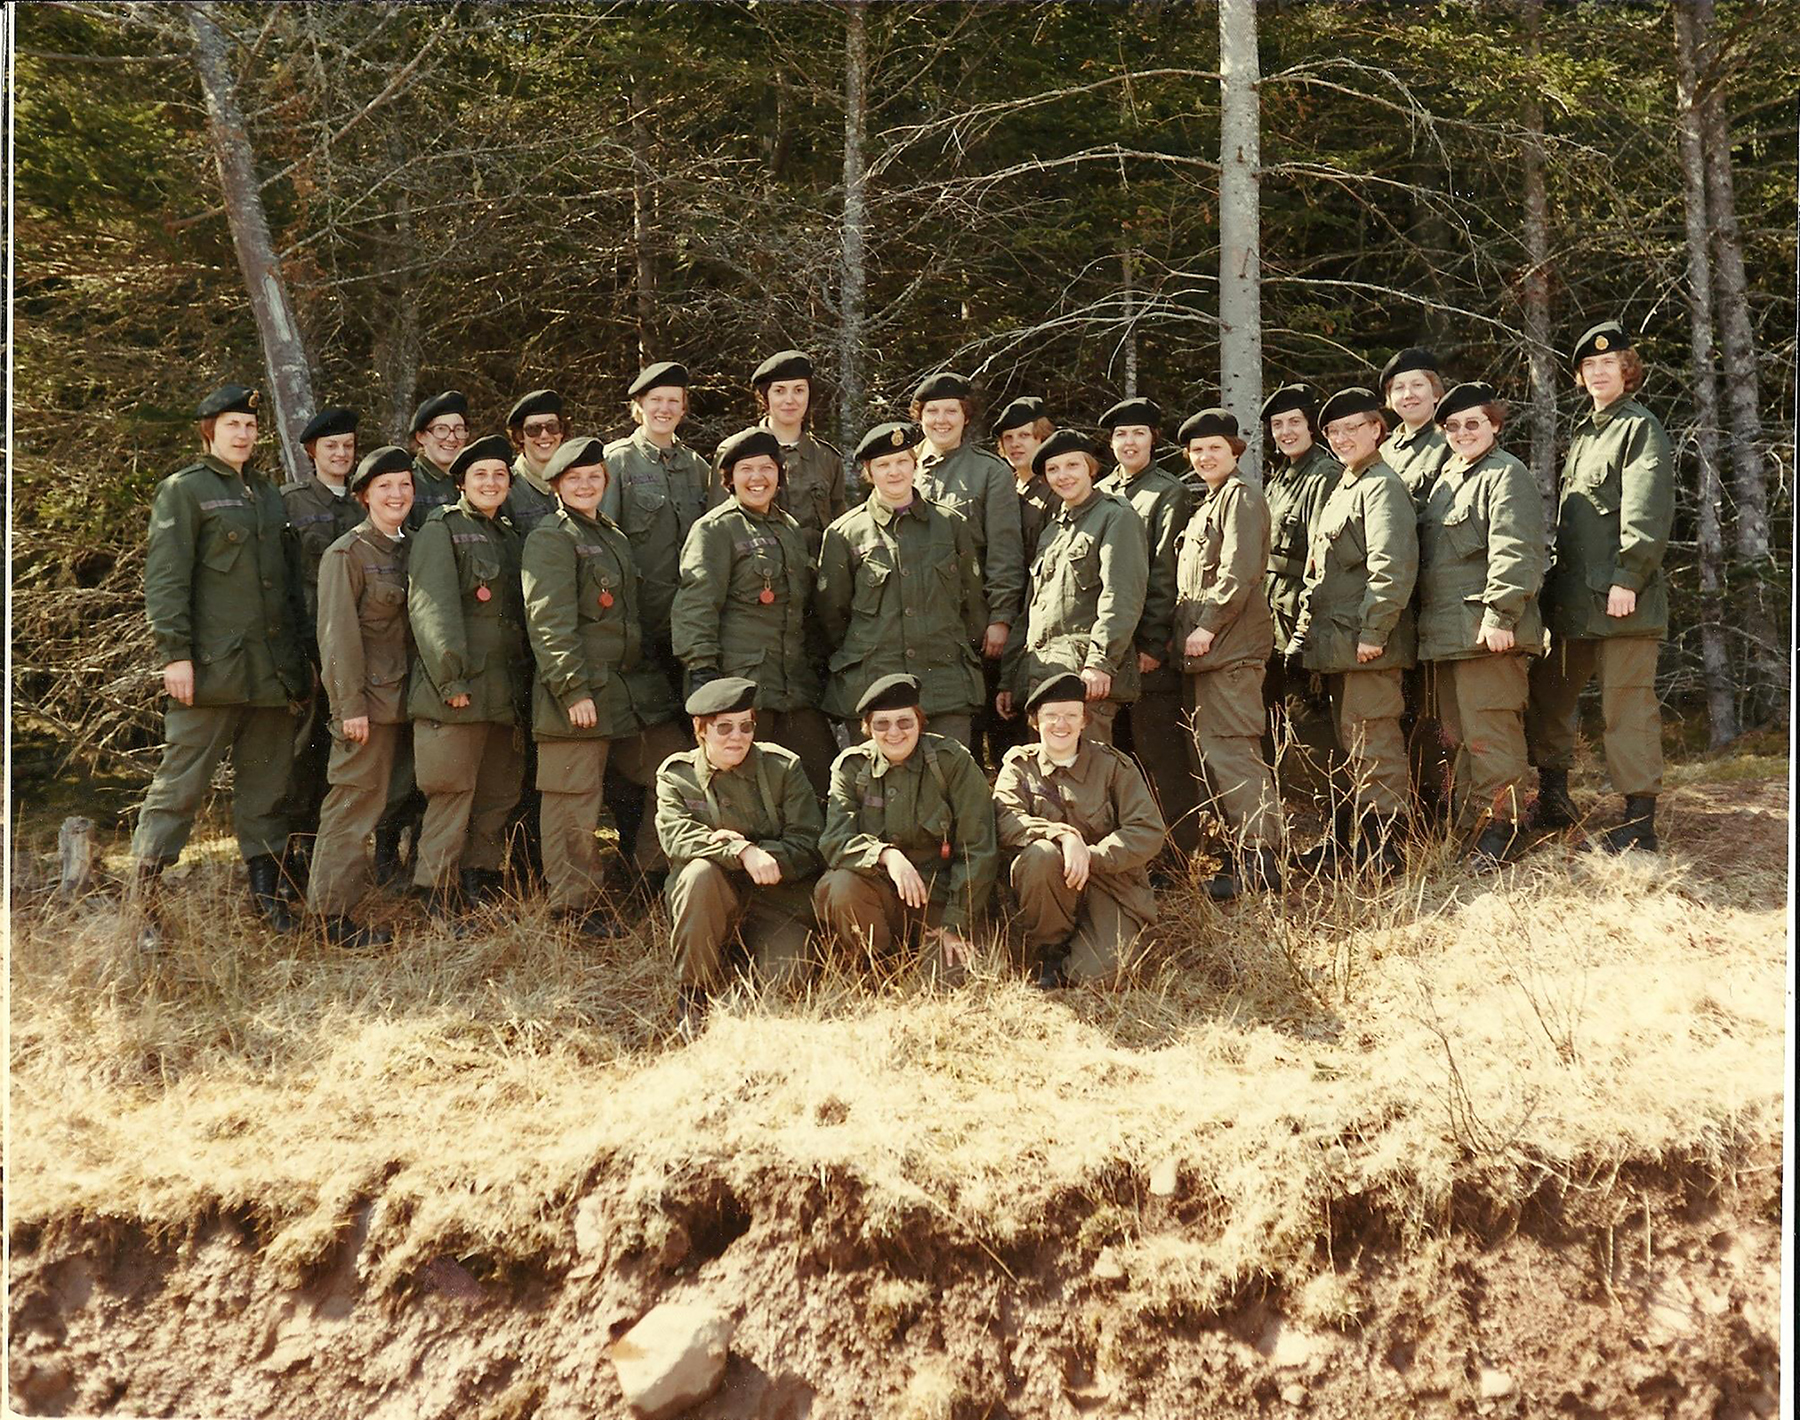 Captain Cathy Coombs (back row, third from the left) stands with her group during basic training in Granville, Cornwallis, Nova Scotia, in 1976. PHOTO: Submitted